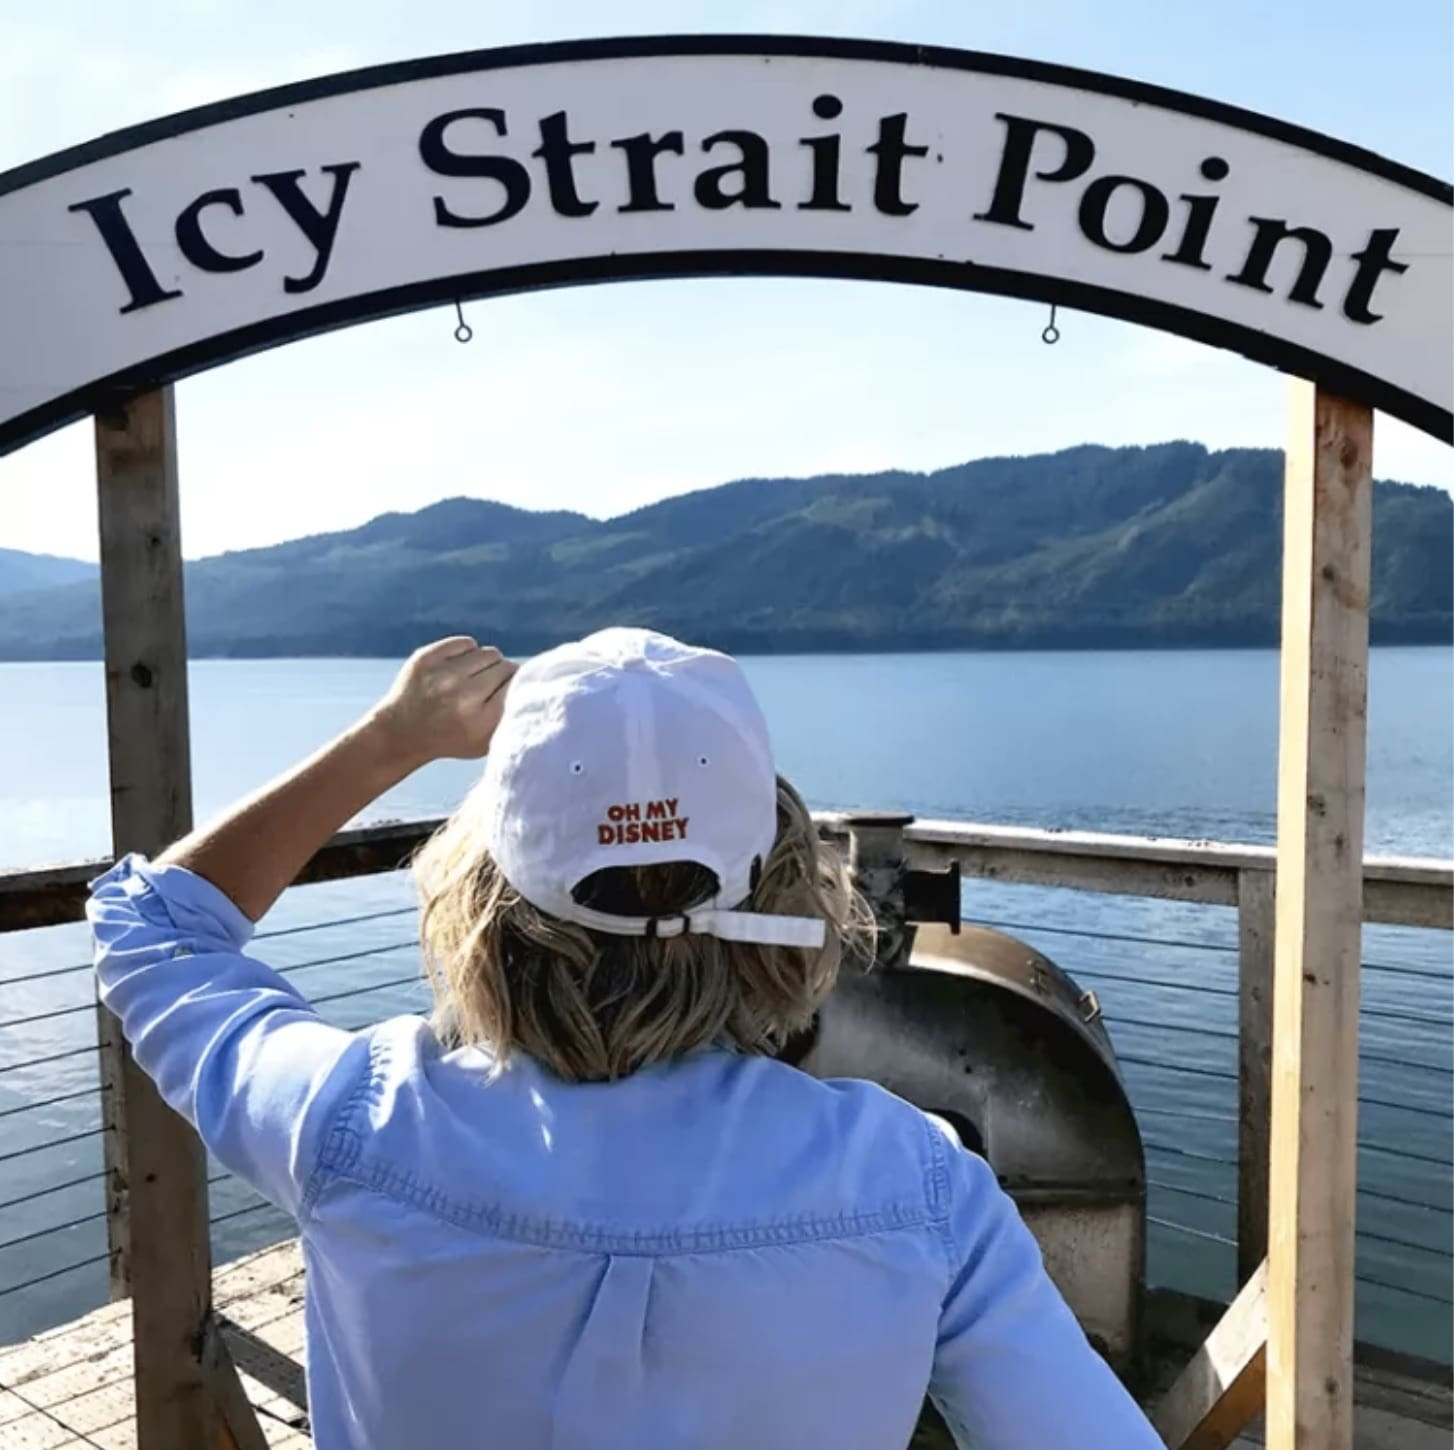 Icy Strait Point Sign in Alaska with Oh My Disney hat